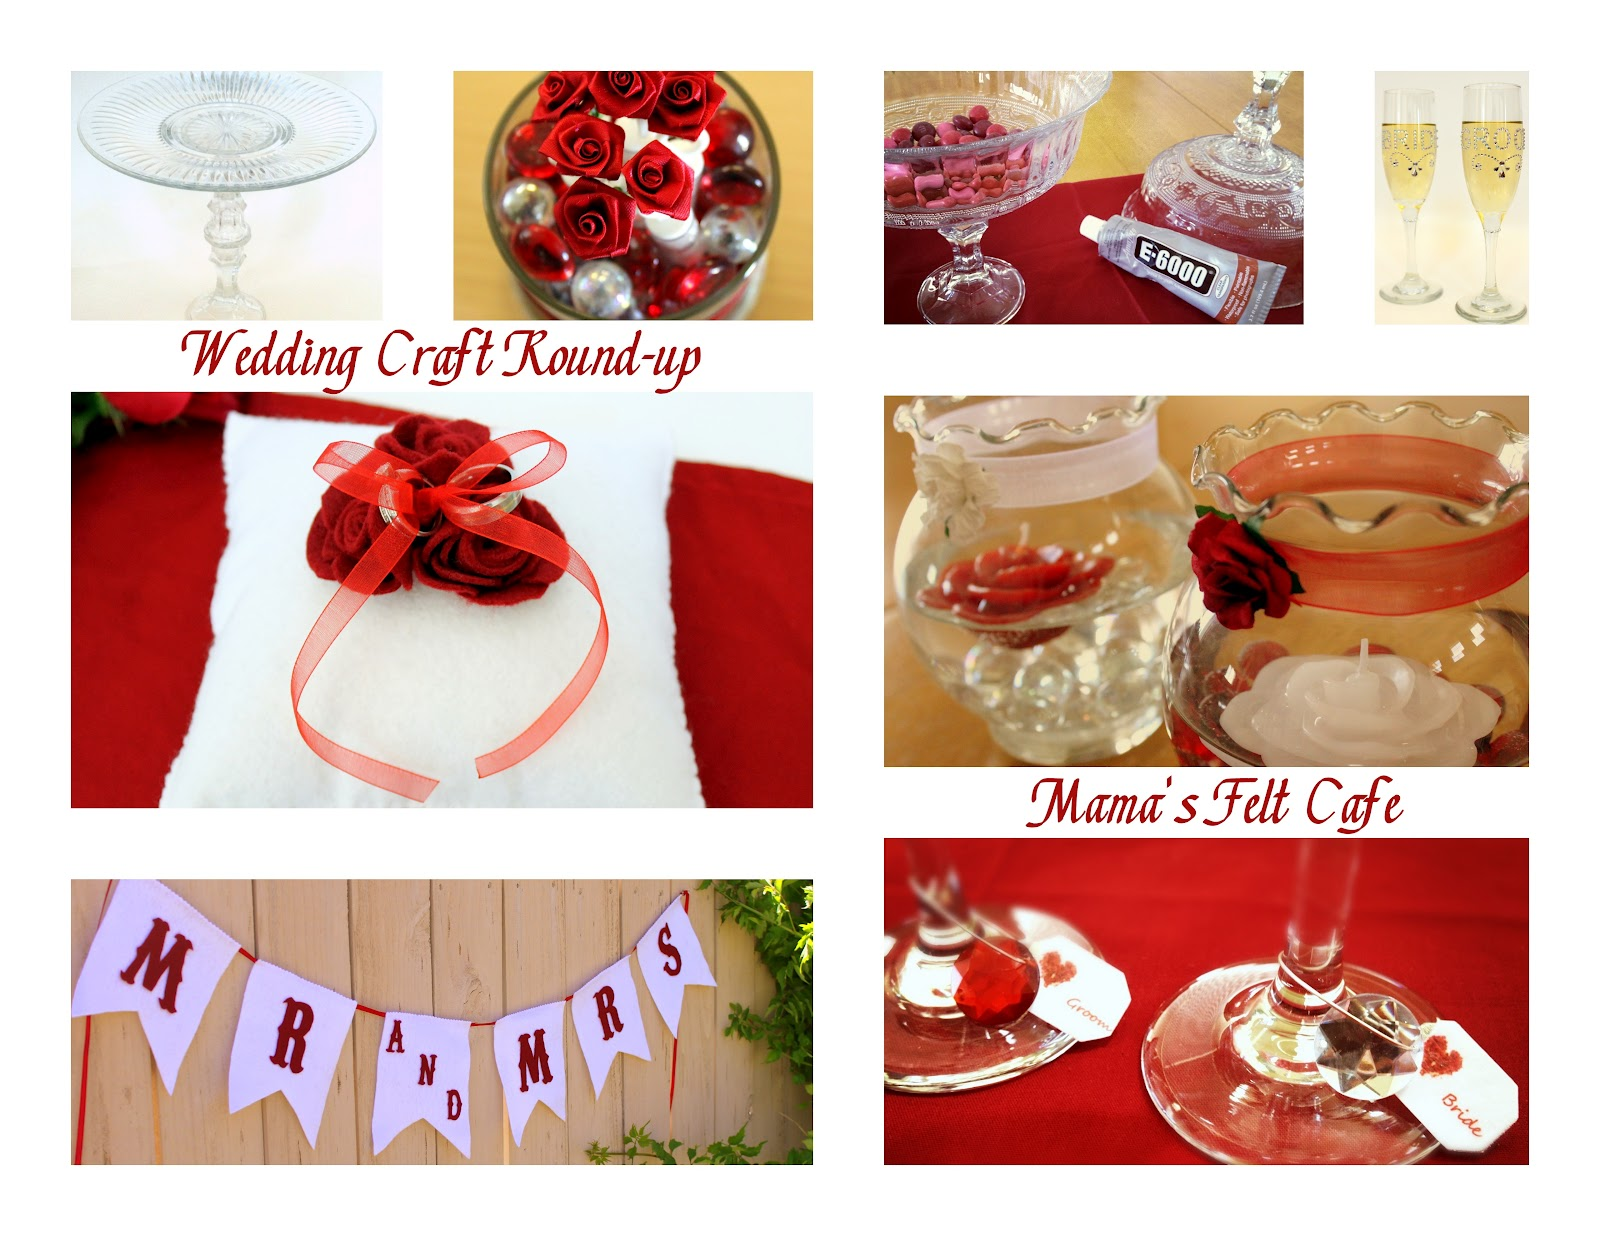 Mama S Felt Cafe Diy Wedding Craft Round Up